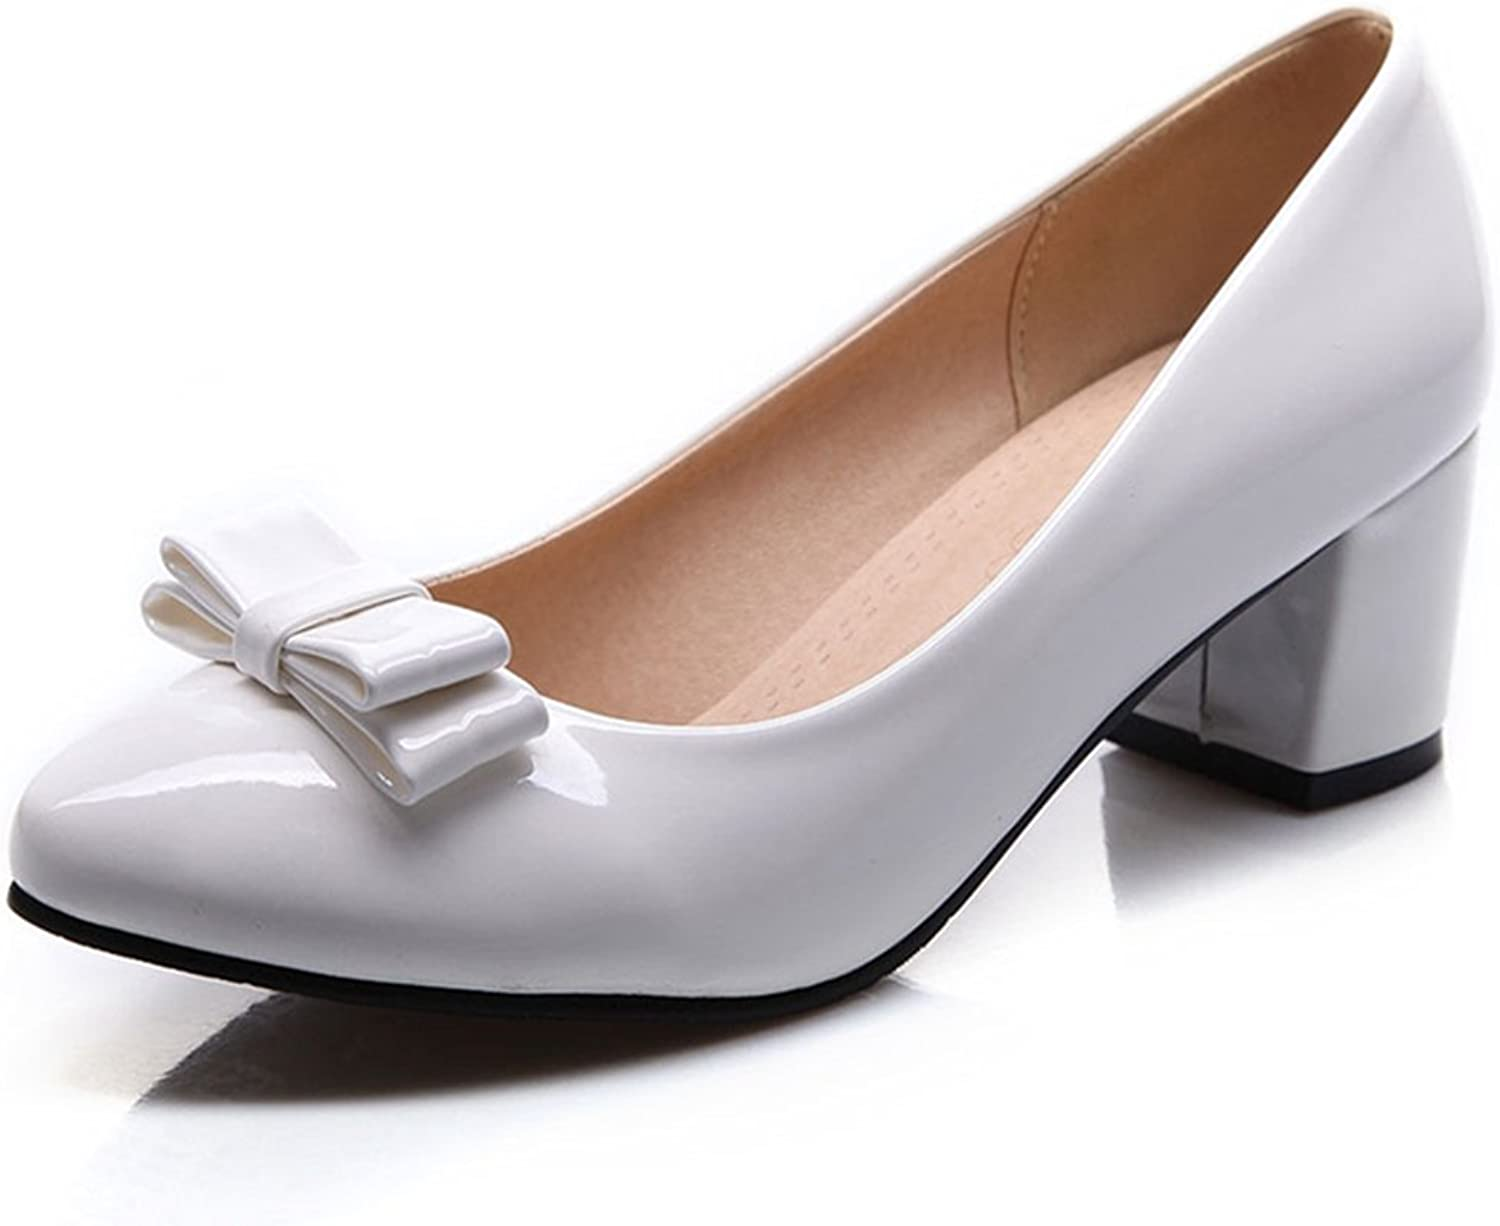 York Zhu Women Pumps, Sexy Bow-tie Slip-on Pointed Toe Square Heel Wedding shoes